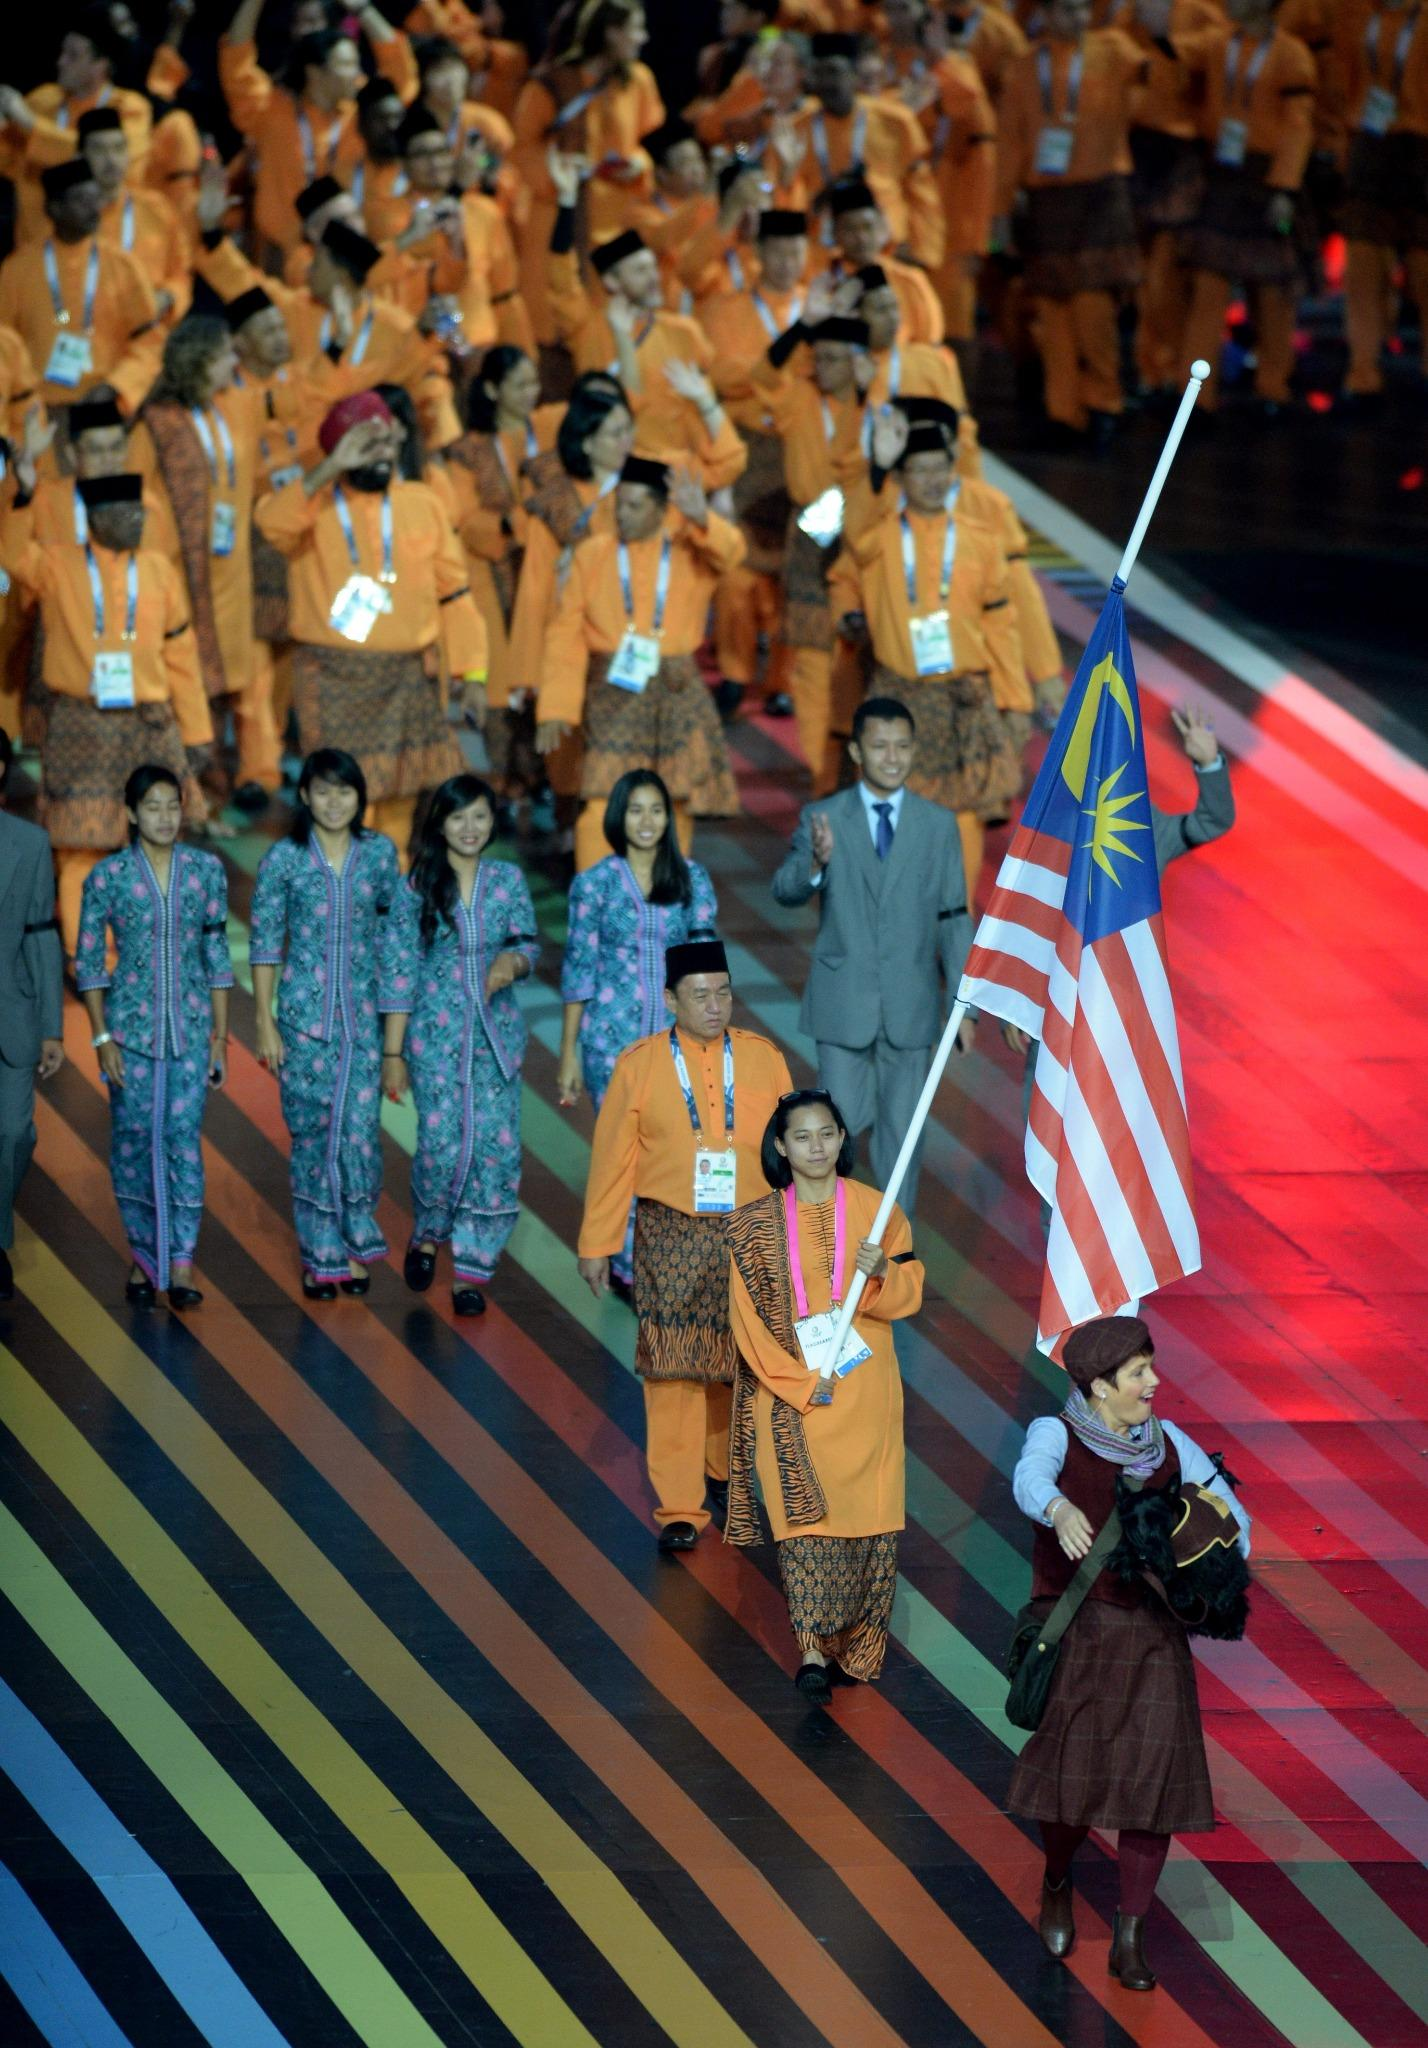 RT @EveningTimesPic: The Malaysian team fly their flag at half mast in memory of MH17 Pic @pontyphoto #Glasgow2014 #openingceremony #MH17 h…